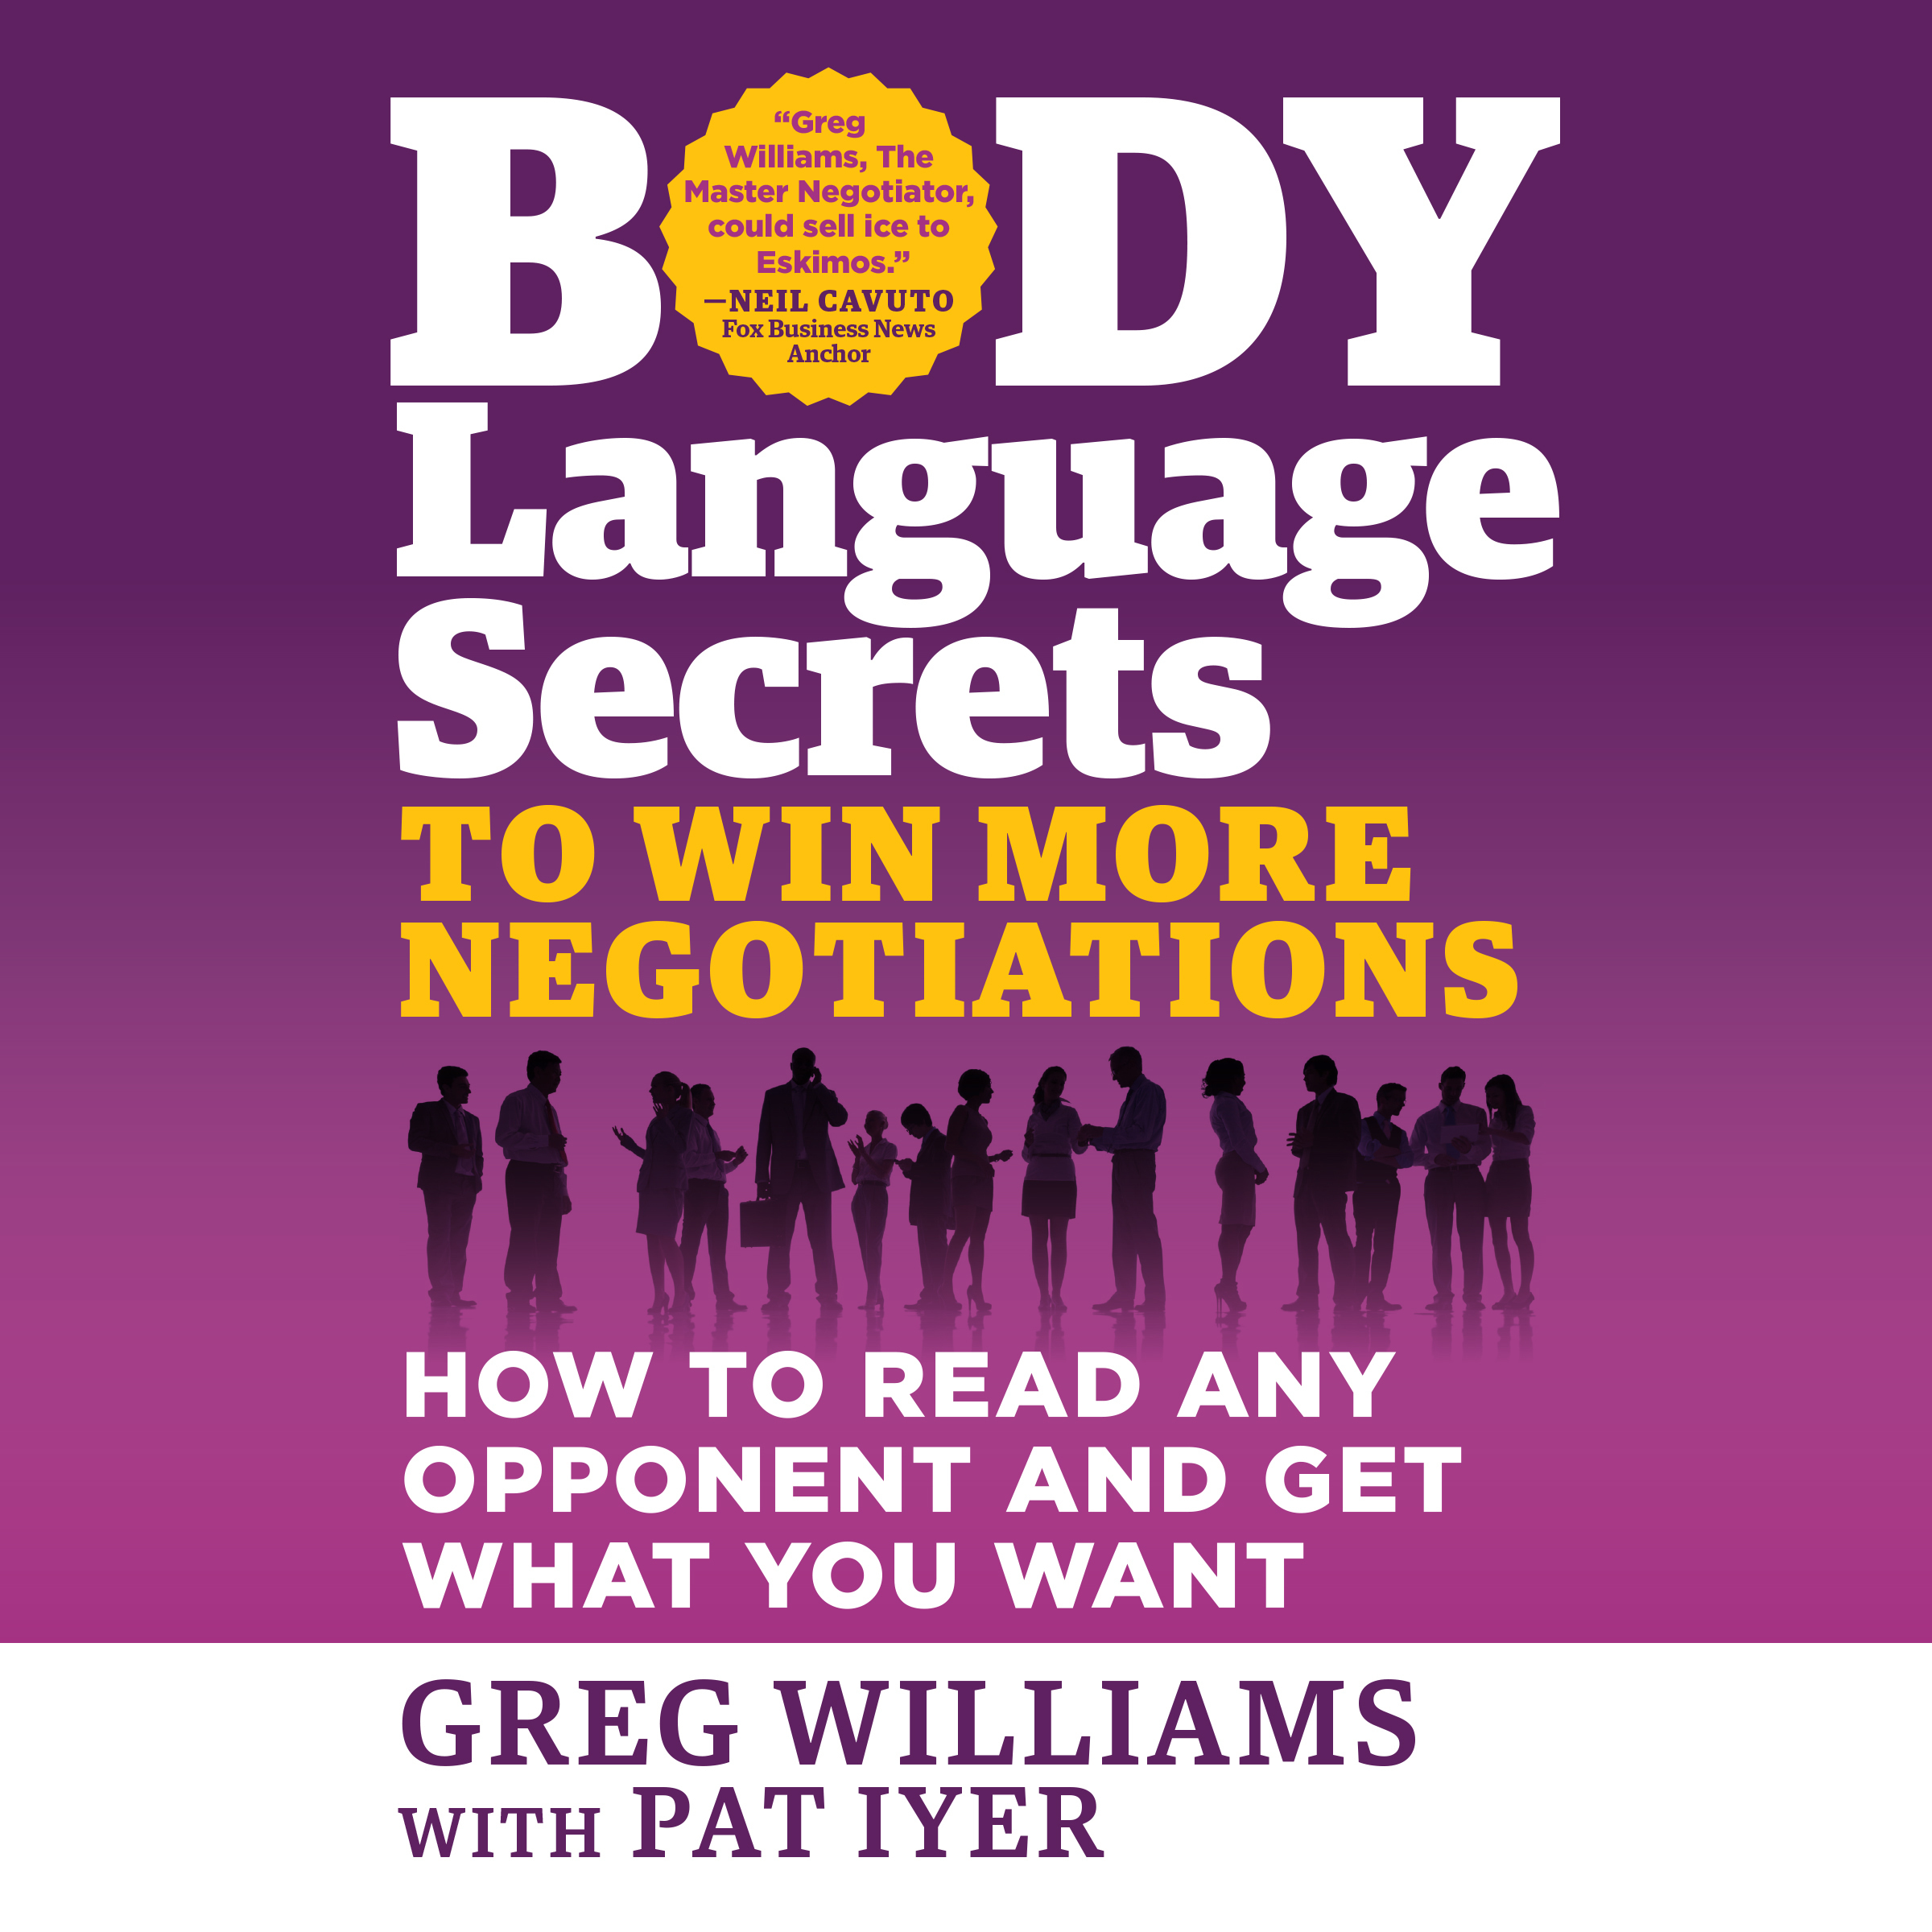 Printable Body Language Secrets to Win More Negotiations: How to Read Any Opponent and Get What You Want Audiobook Cover Art